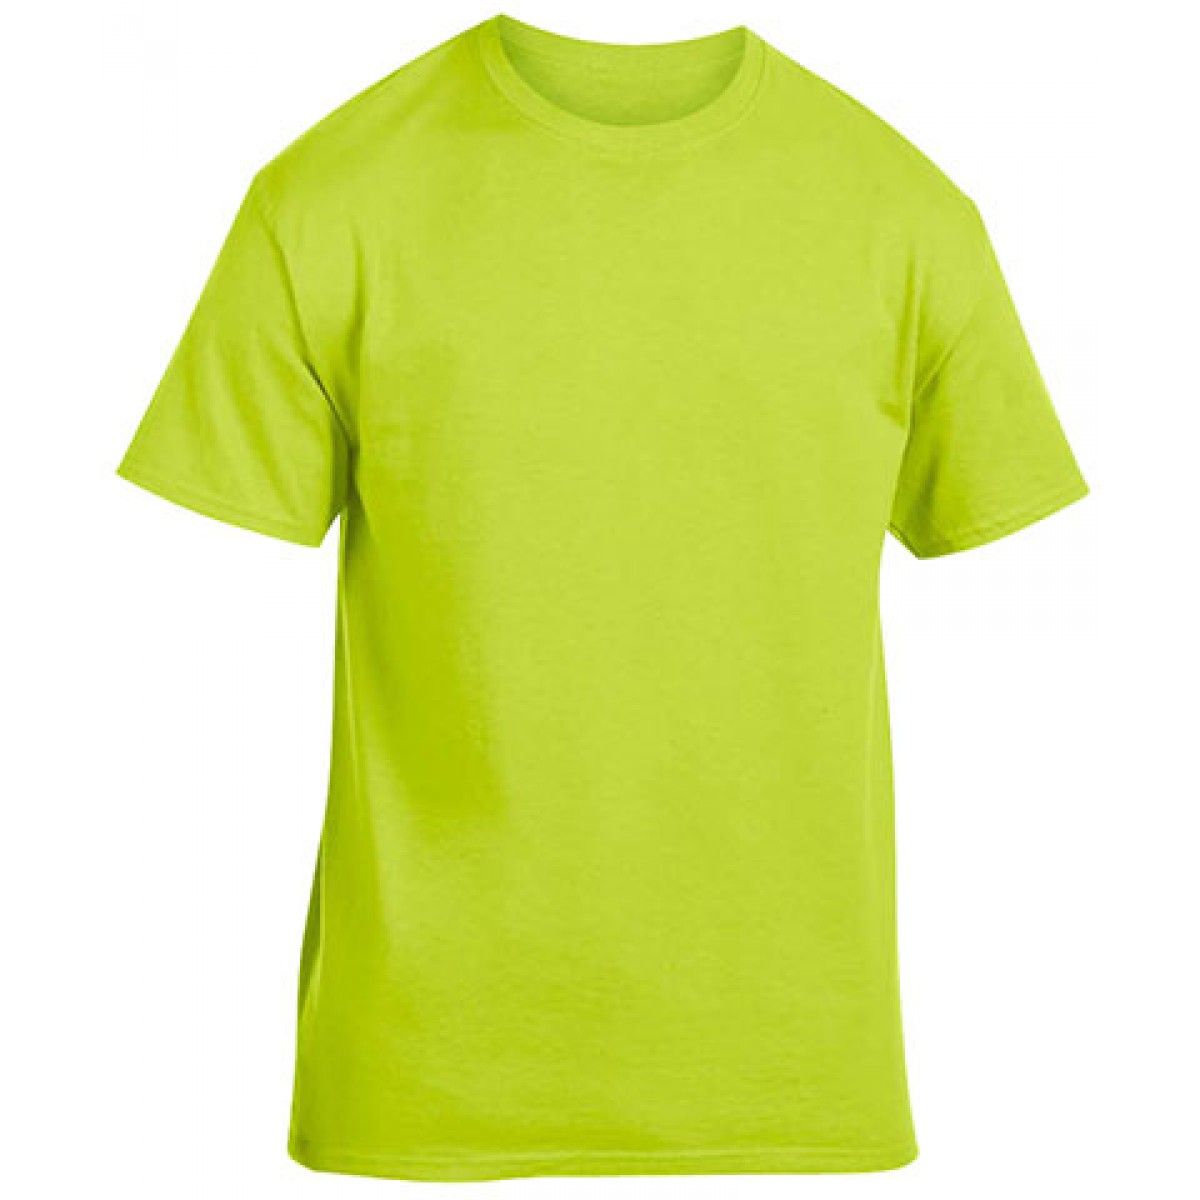 Cotton Short Sleeve T-Shirt-Safety Green-L